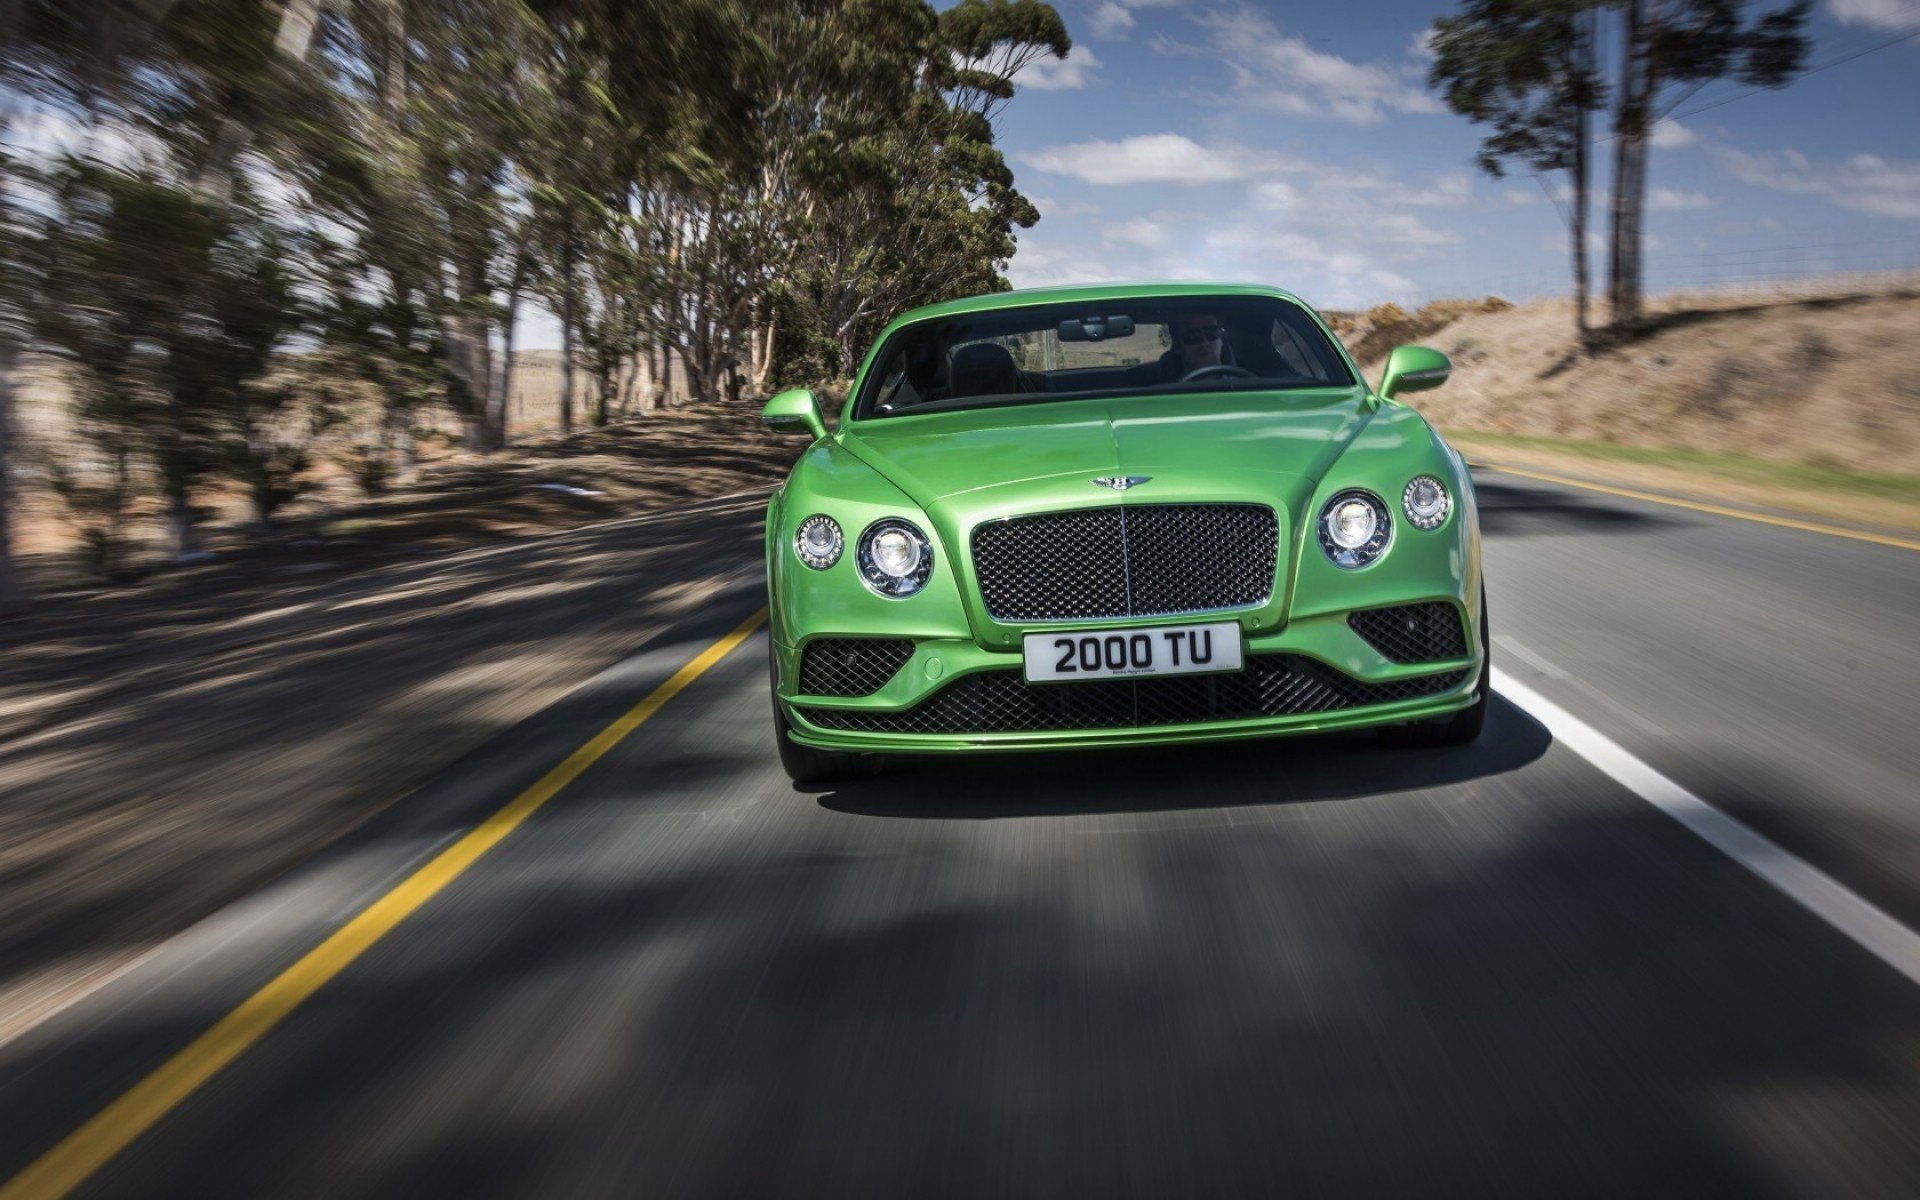 bentley car vehicle asphalt transportation system hurry blacktop road pavement blur drive action fast bentley continental gtc